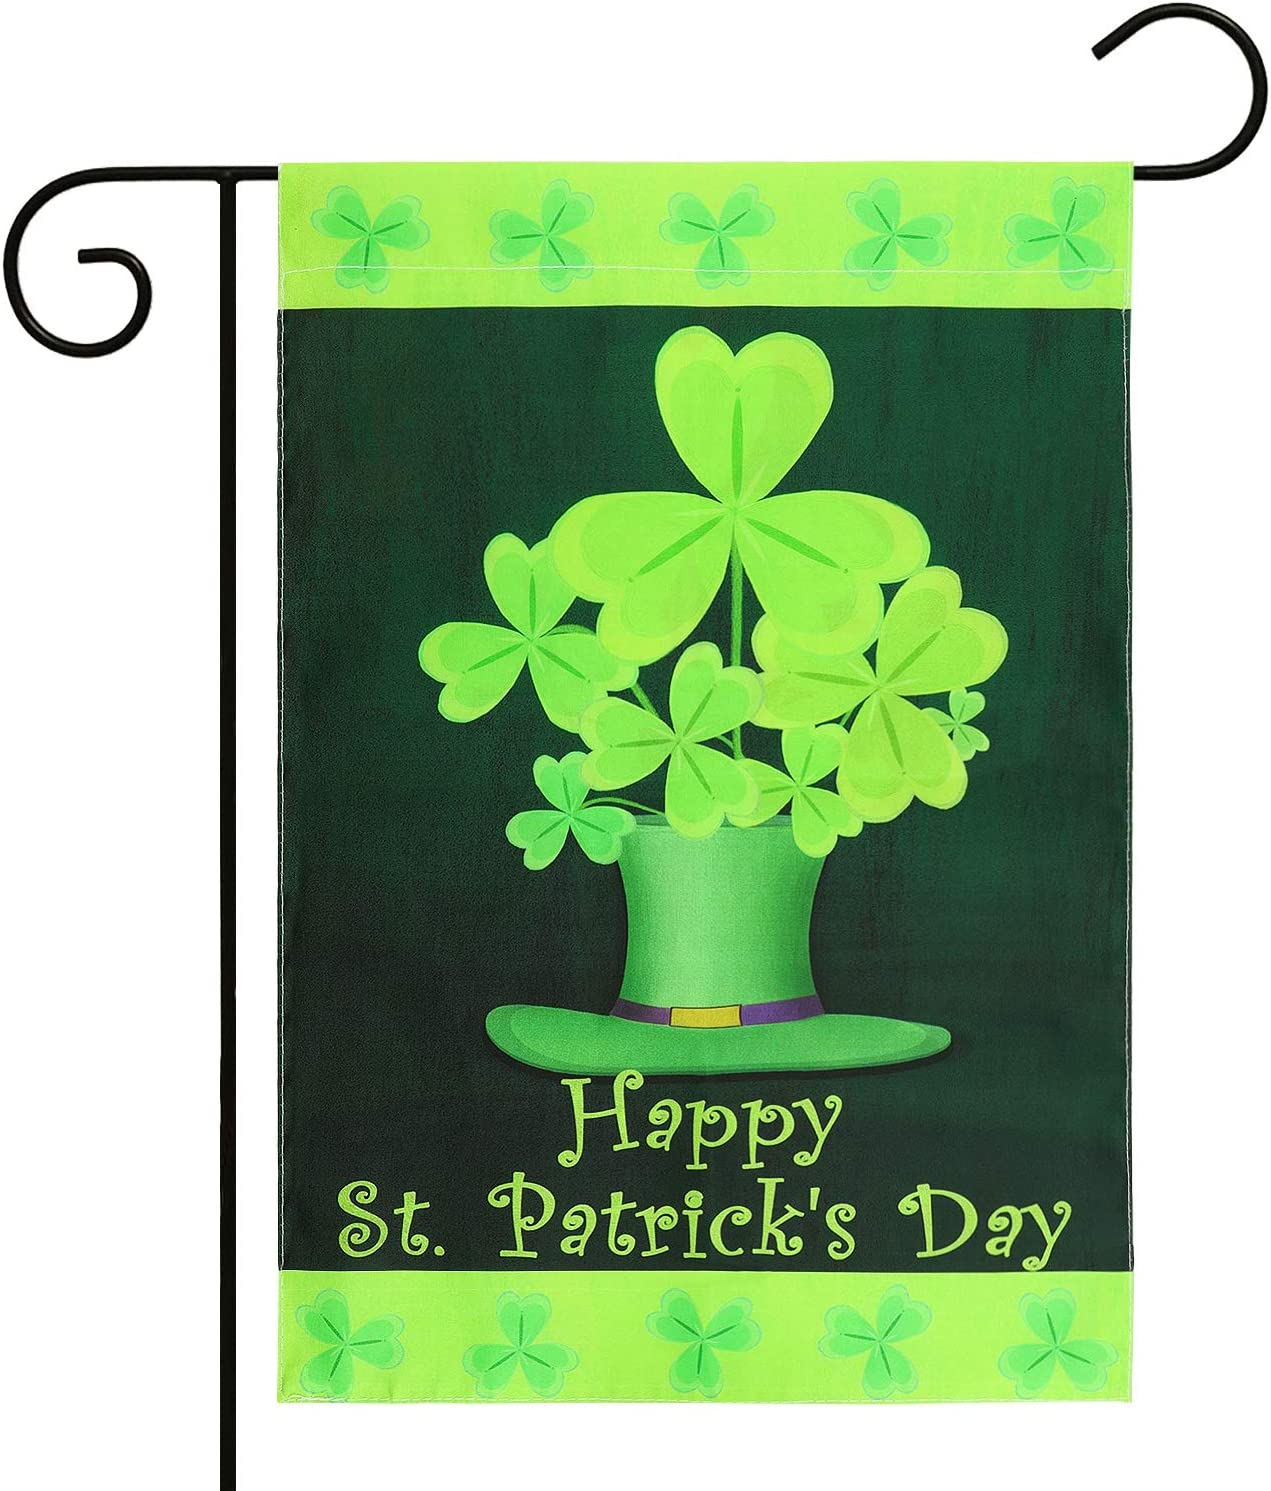 WATINC Happy St. Patrick's Day Garden Flag, Double Sided Clover House Flag, Shamrock Indoor Home Flag with Green Hat Pattern, Outdoor Three Leaves Polyester Decor Flag for Celebration 18.1 x 12.5 Inch